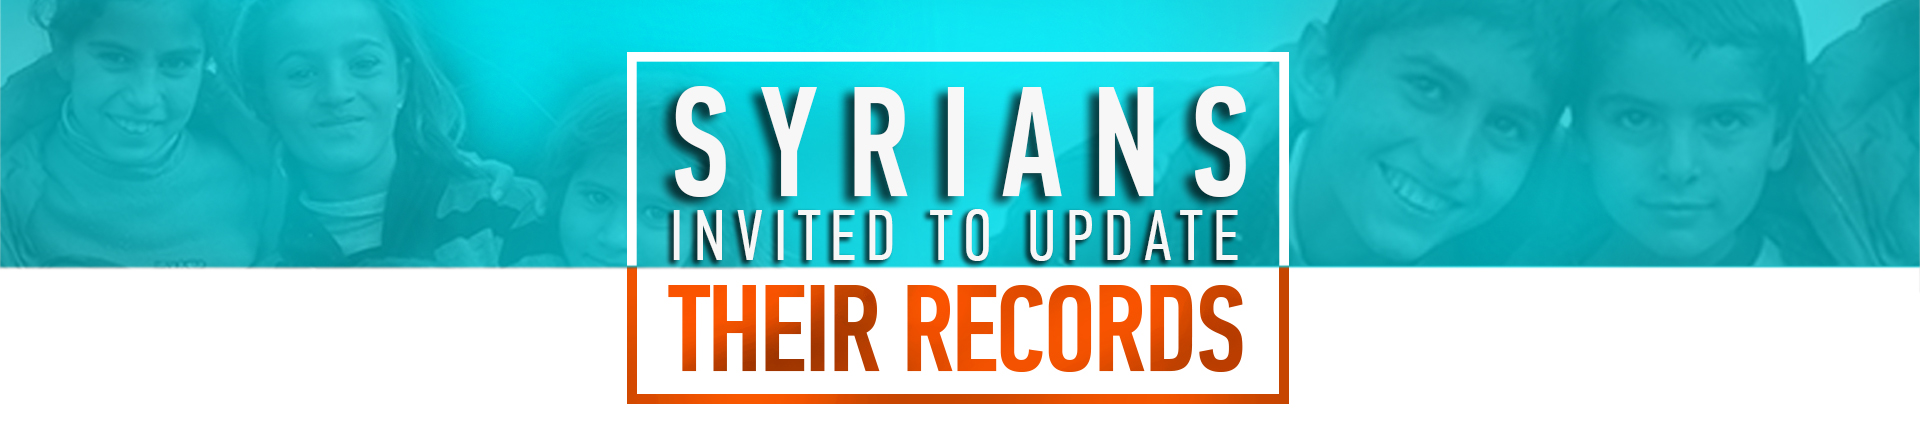 Syrians Invited to Update Their Records